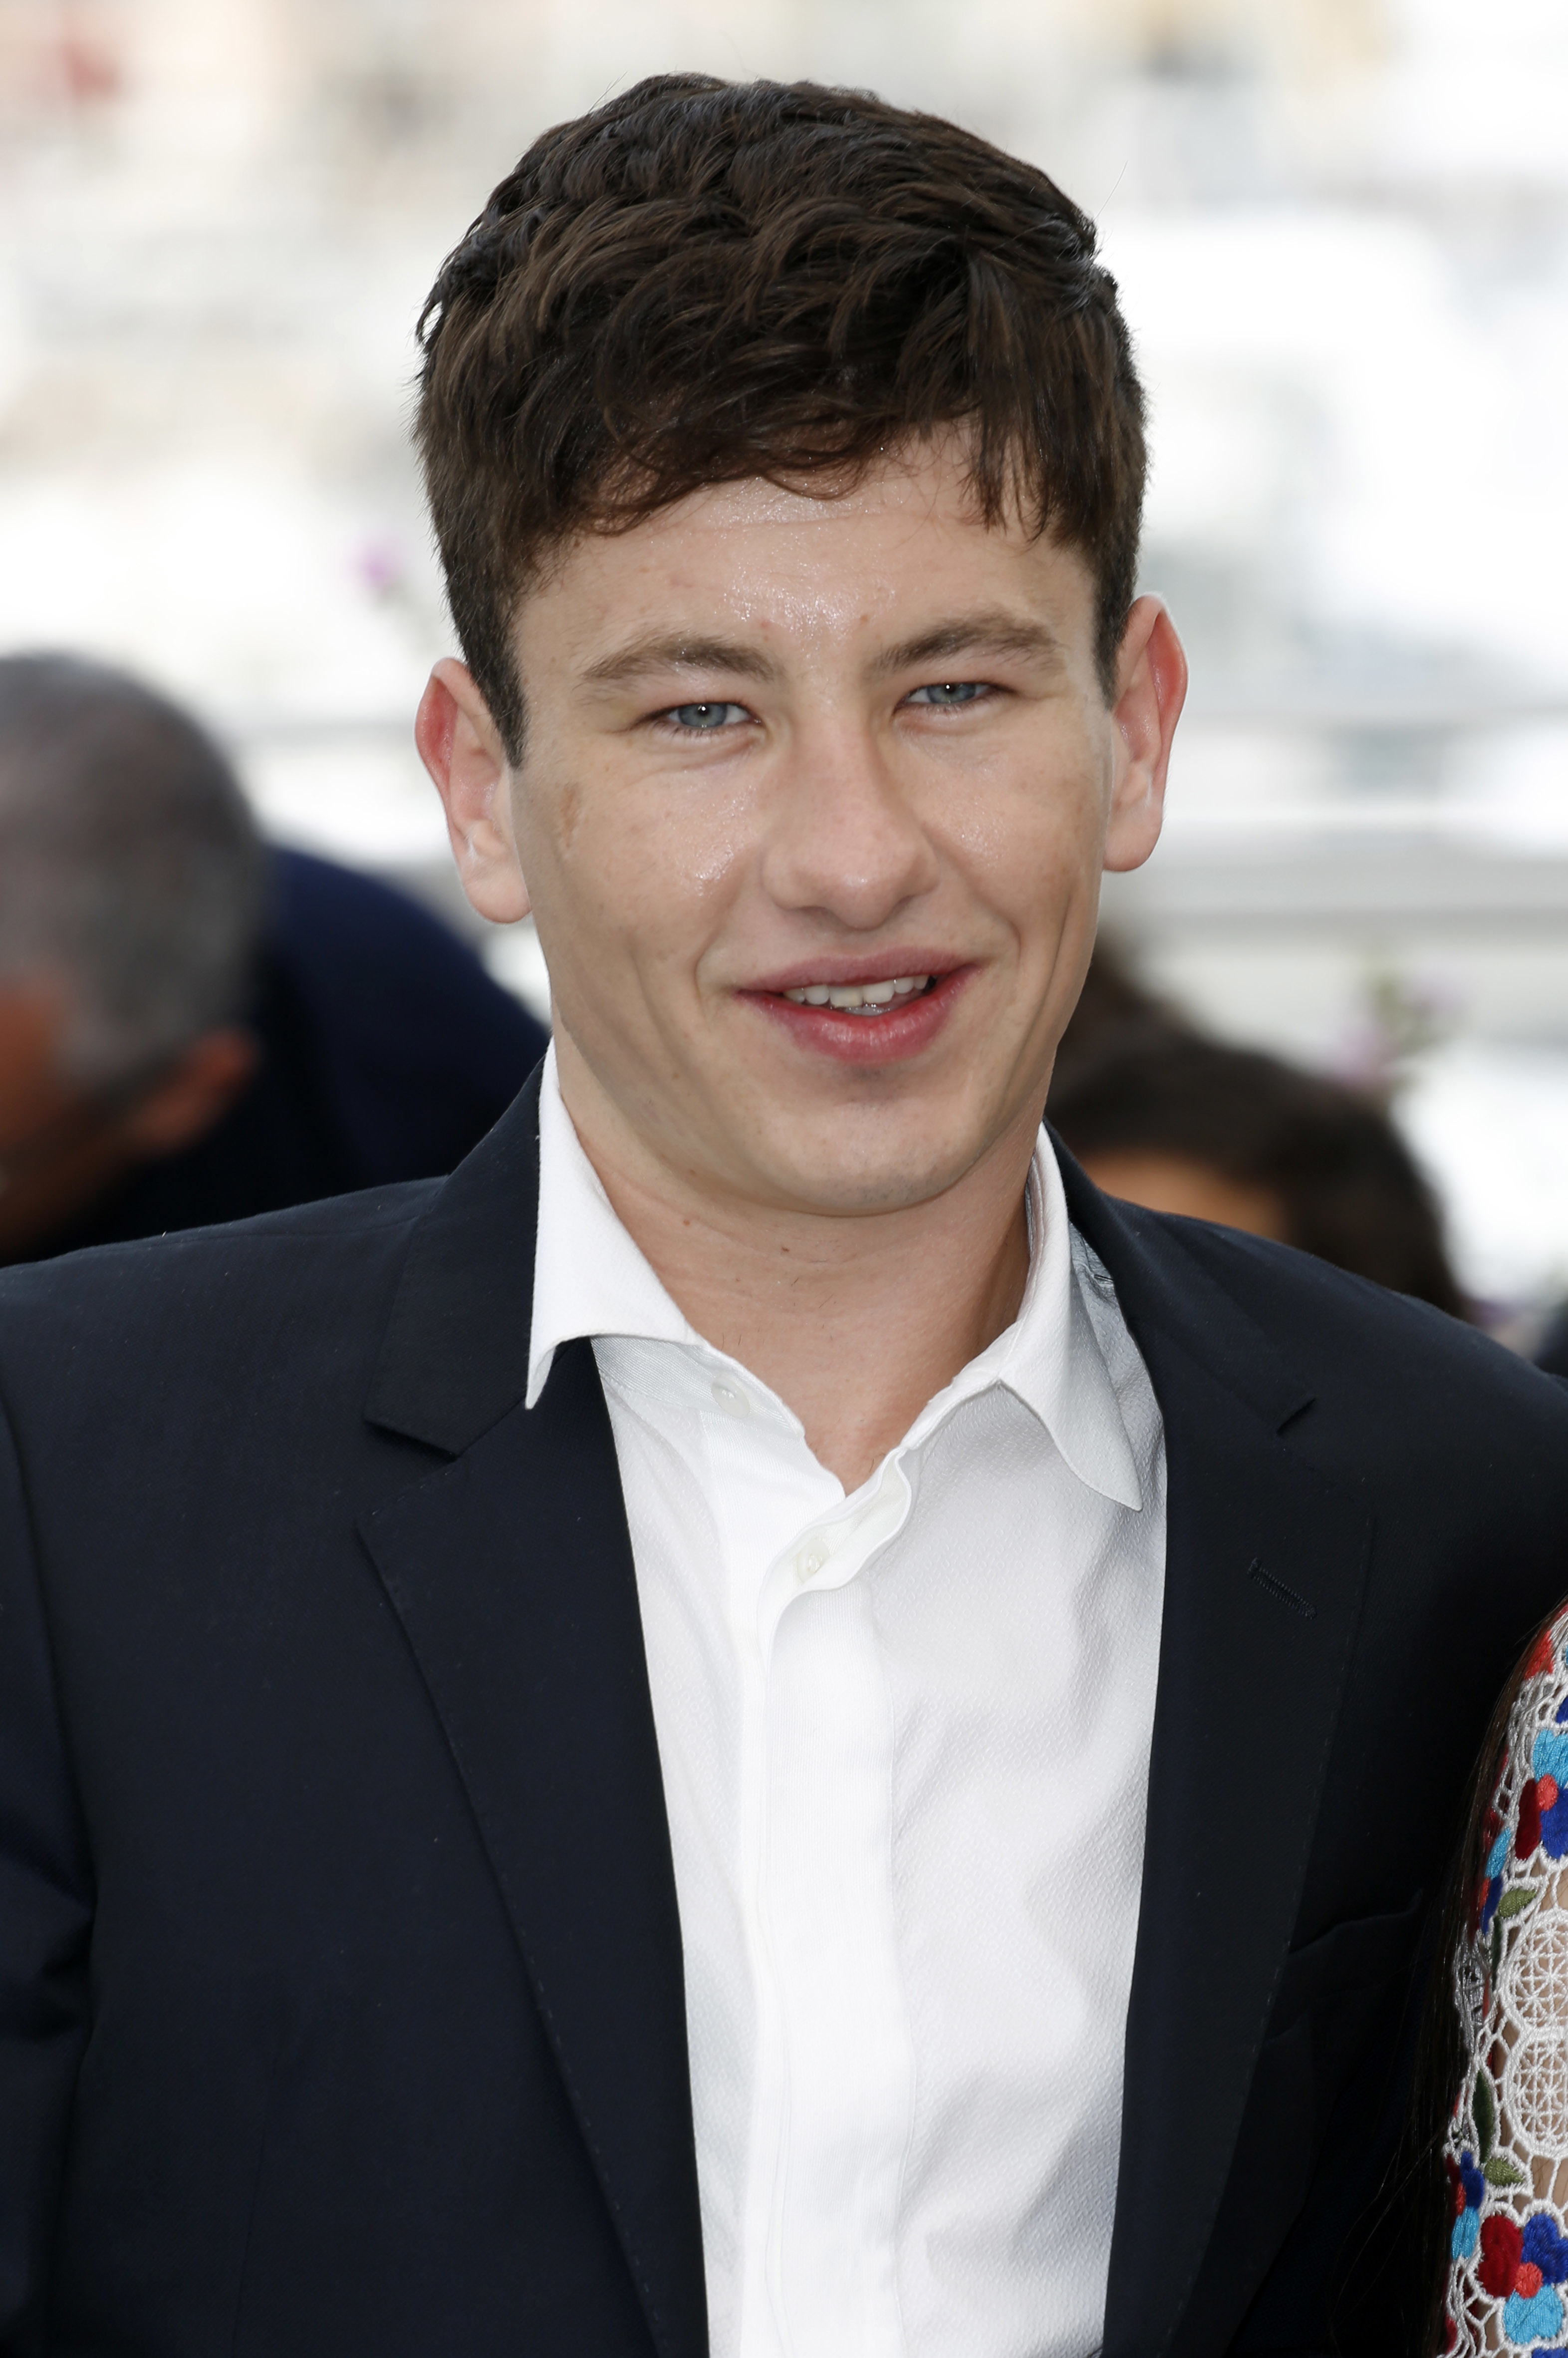 70th annual Cannes Film Festival - 'The Killing of a Sacred Deer' - Photocall  Featuring: Barry Keoghan Where: Cannes, France When: 22 May 2017 Credit: Dave Bedrosian/Future Image/WENN.com  **Not available for publication in Germany**